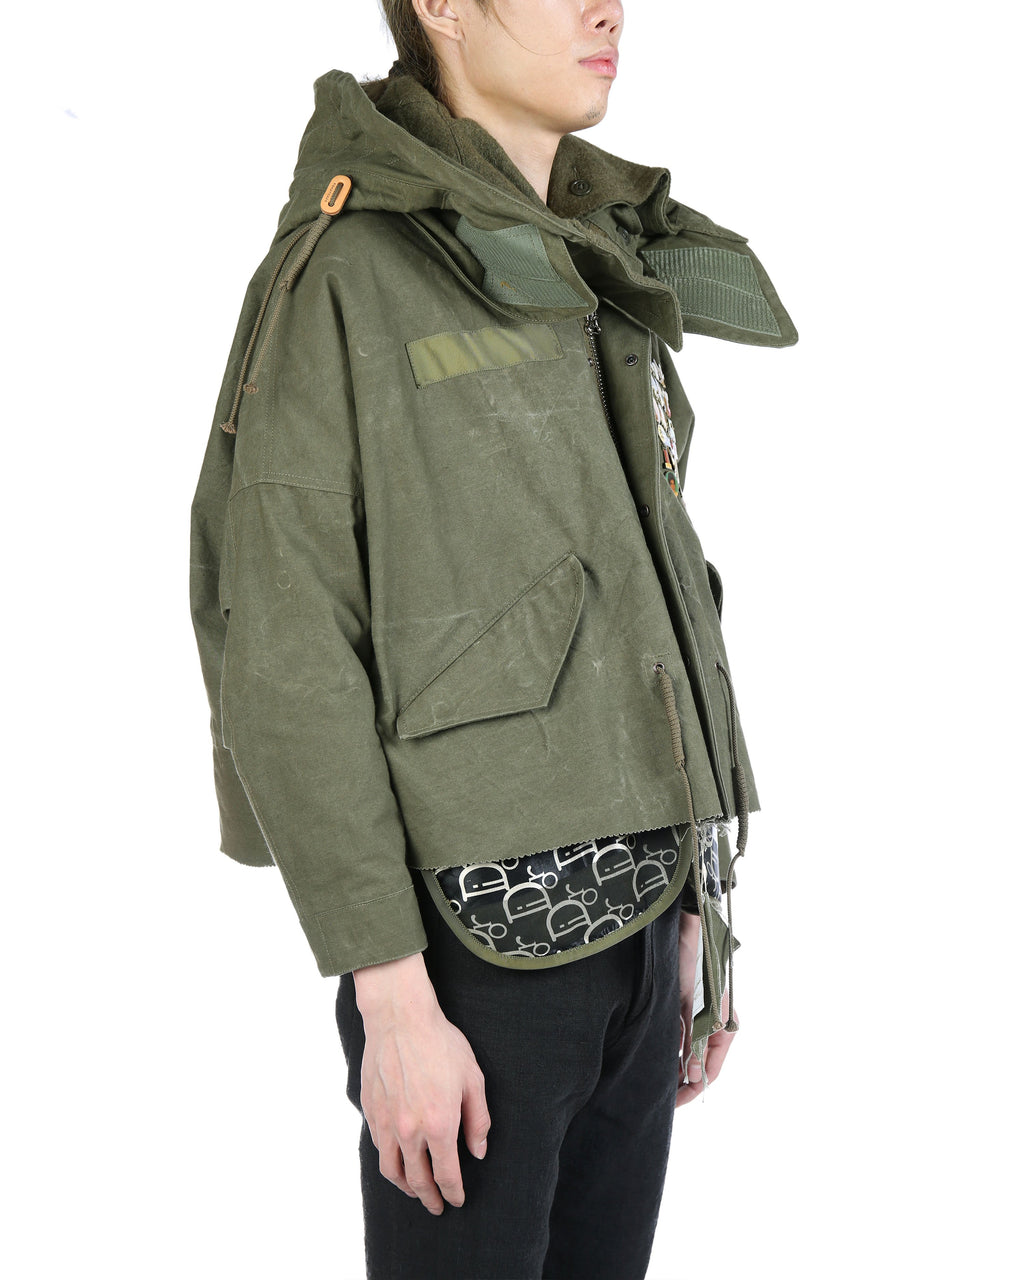 Green Vintage Army Tent Cut Fishtail Parka